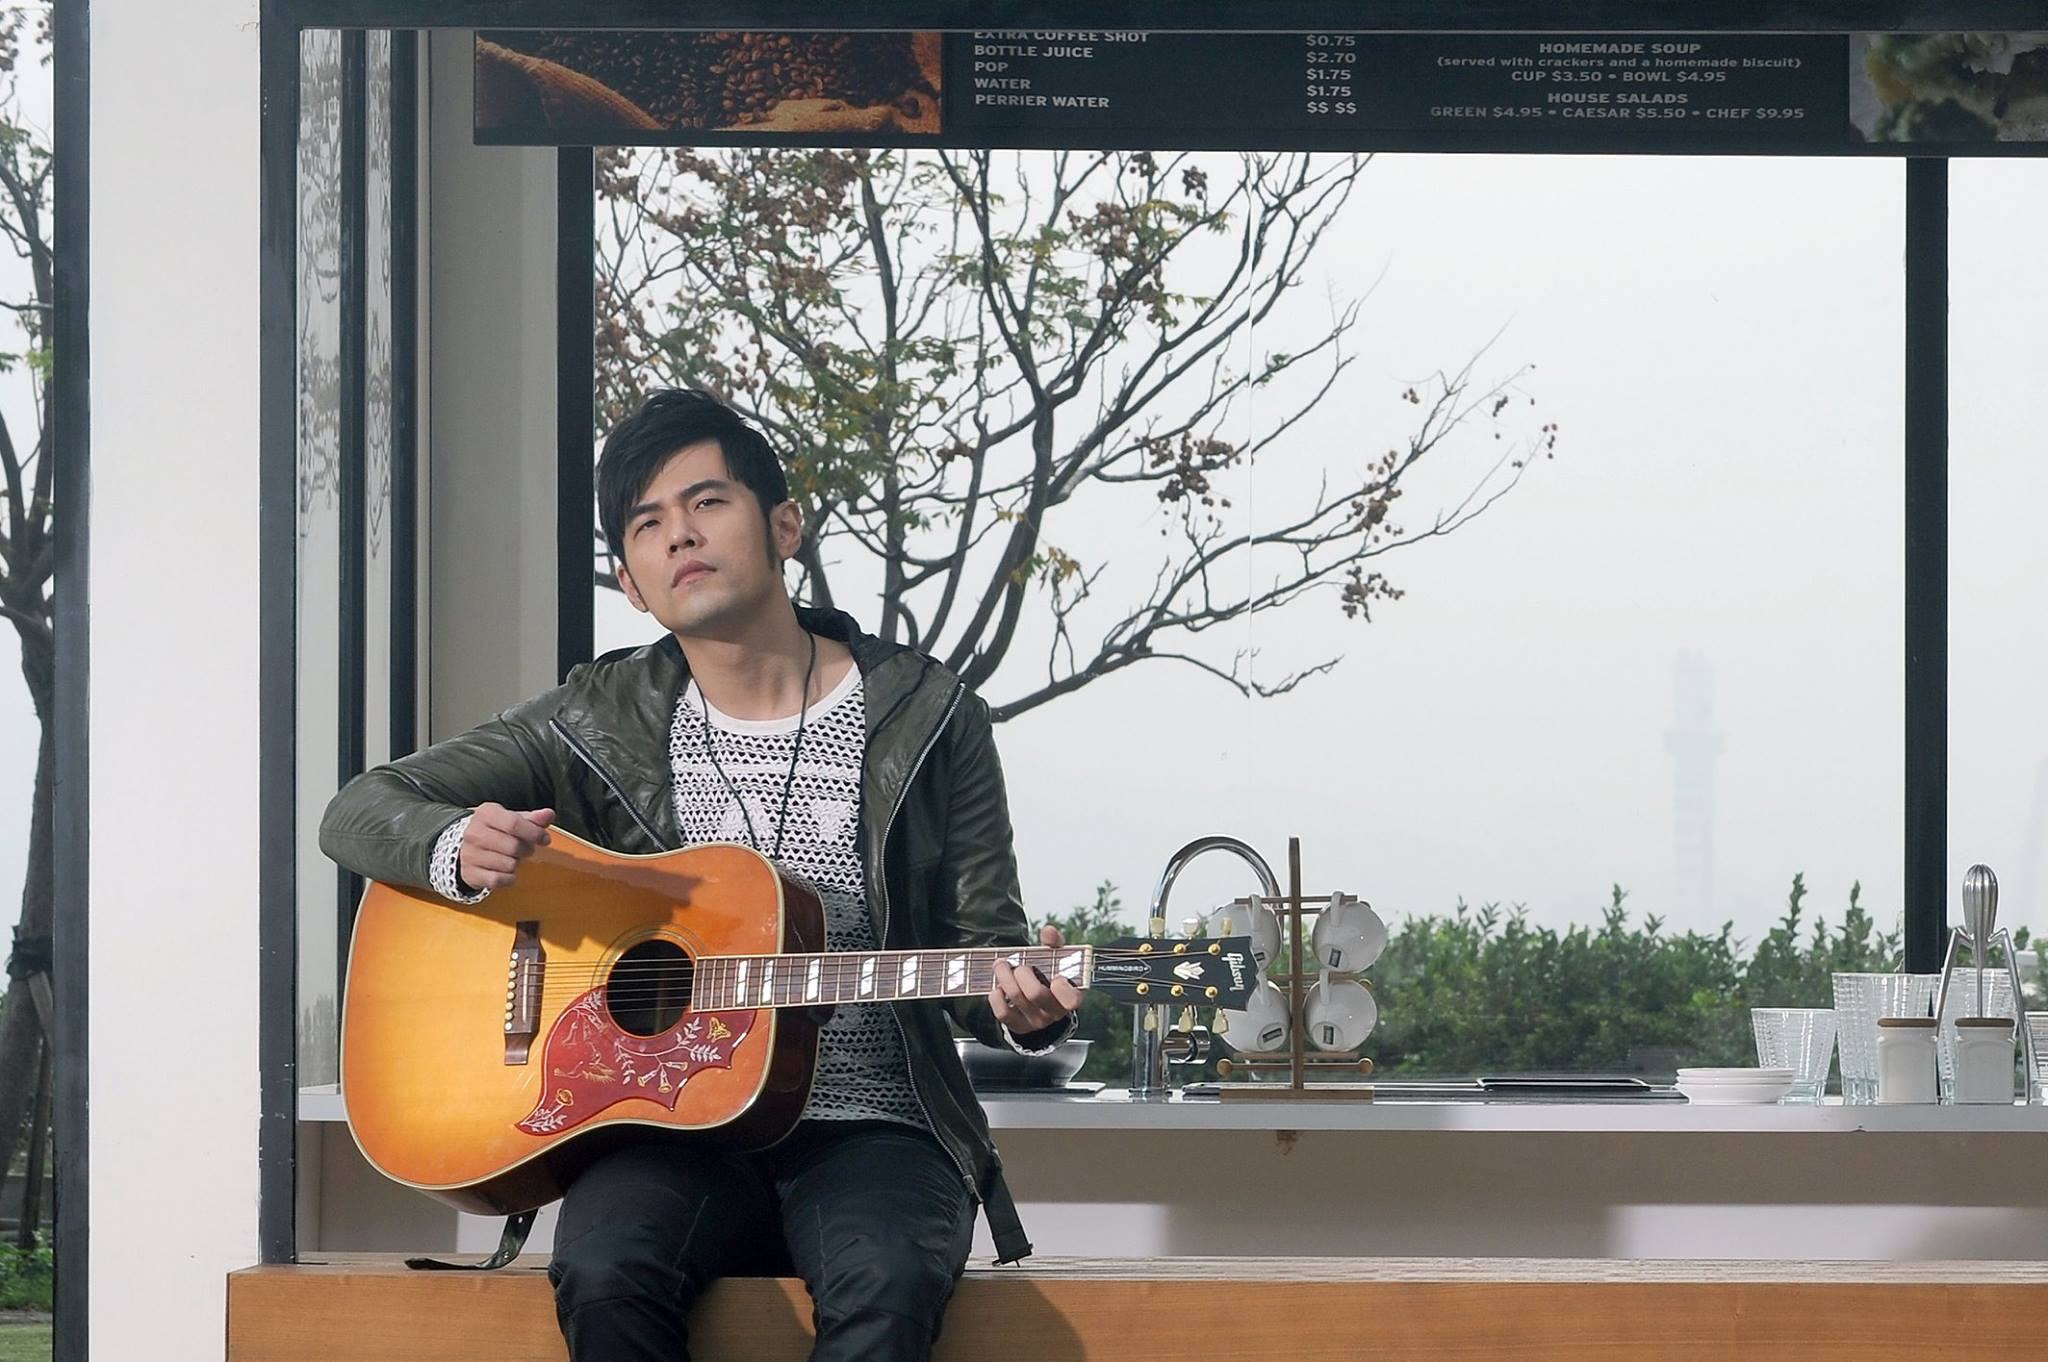 Jay Chou's 10 month old daughter Hathaway composes her first song?!